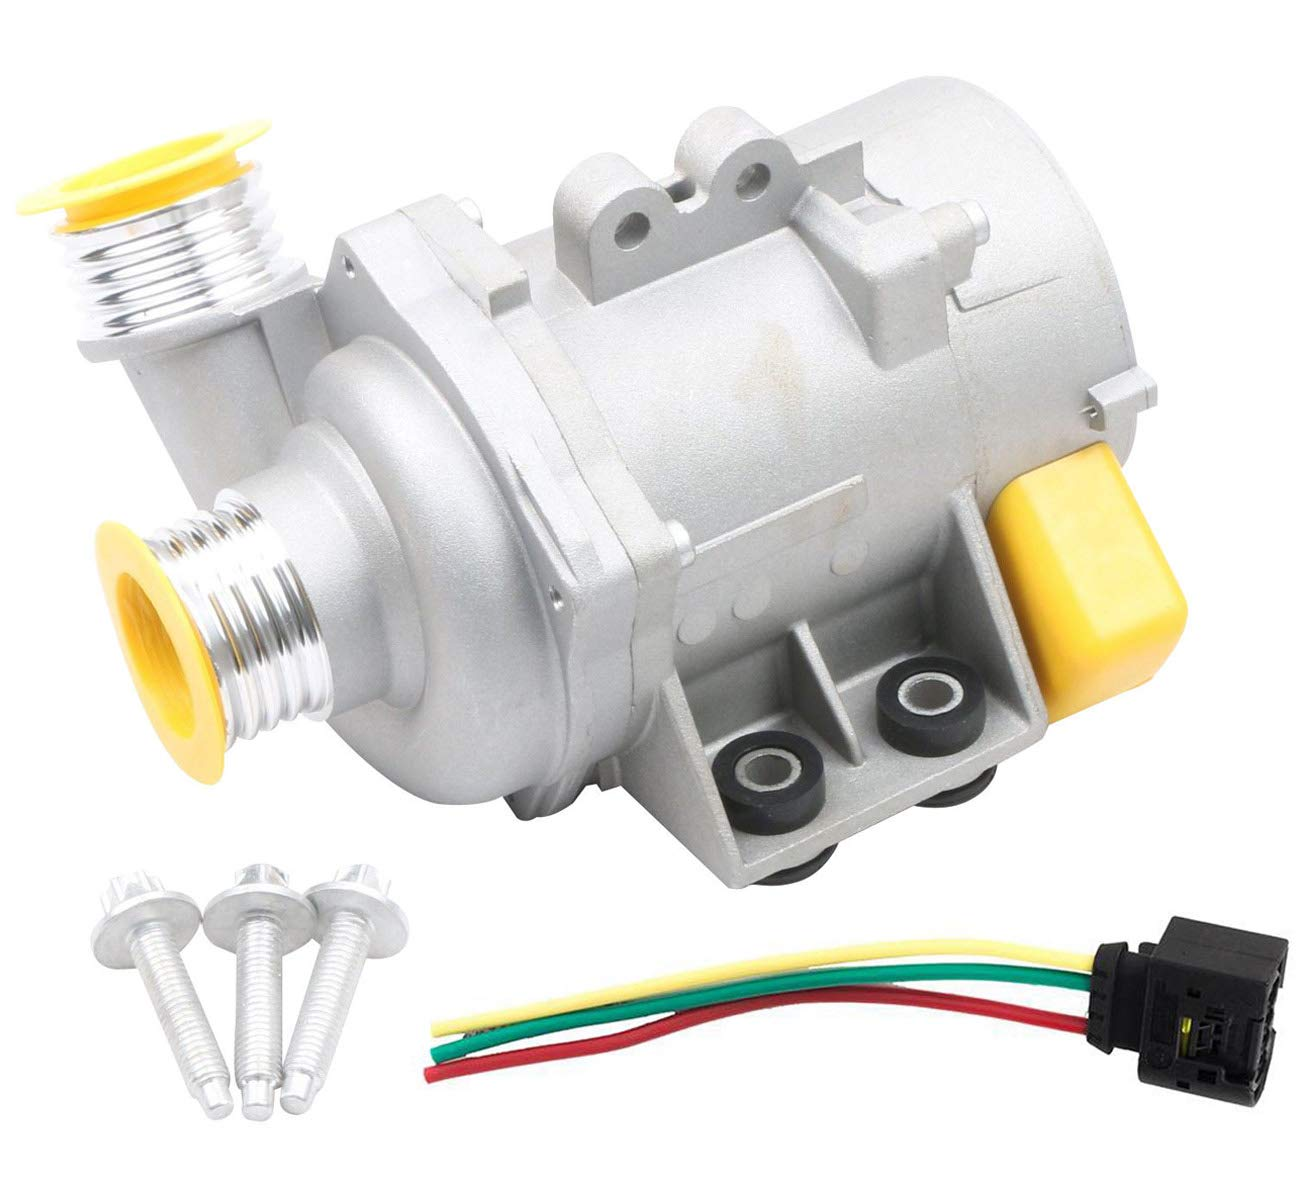 KARPAL Electric Engine Water Pump and Wire Harness and Bolt 11517586925 Compatible With BMW E90 E91 X3 X5 Z4 328i 525i 528i 530xi